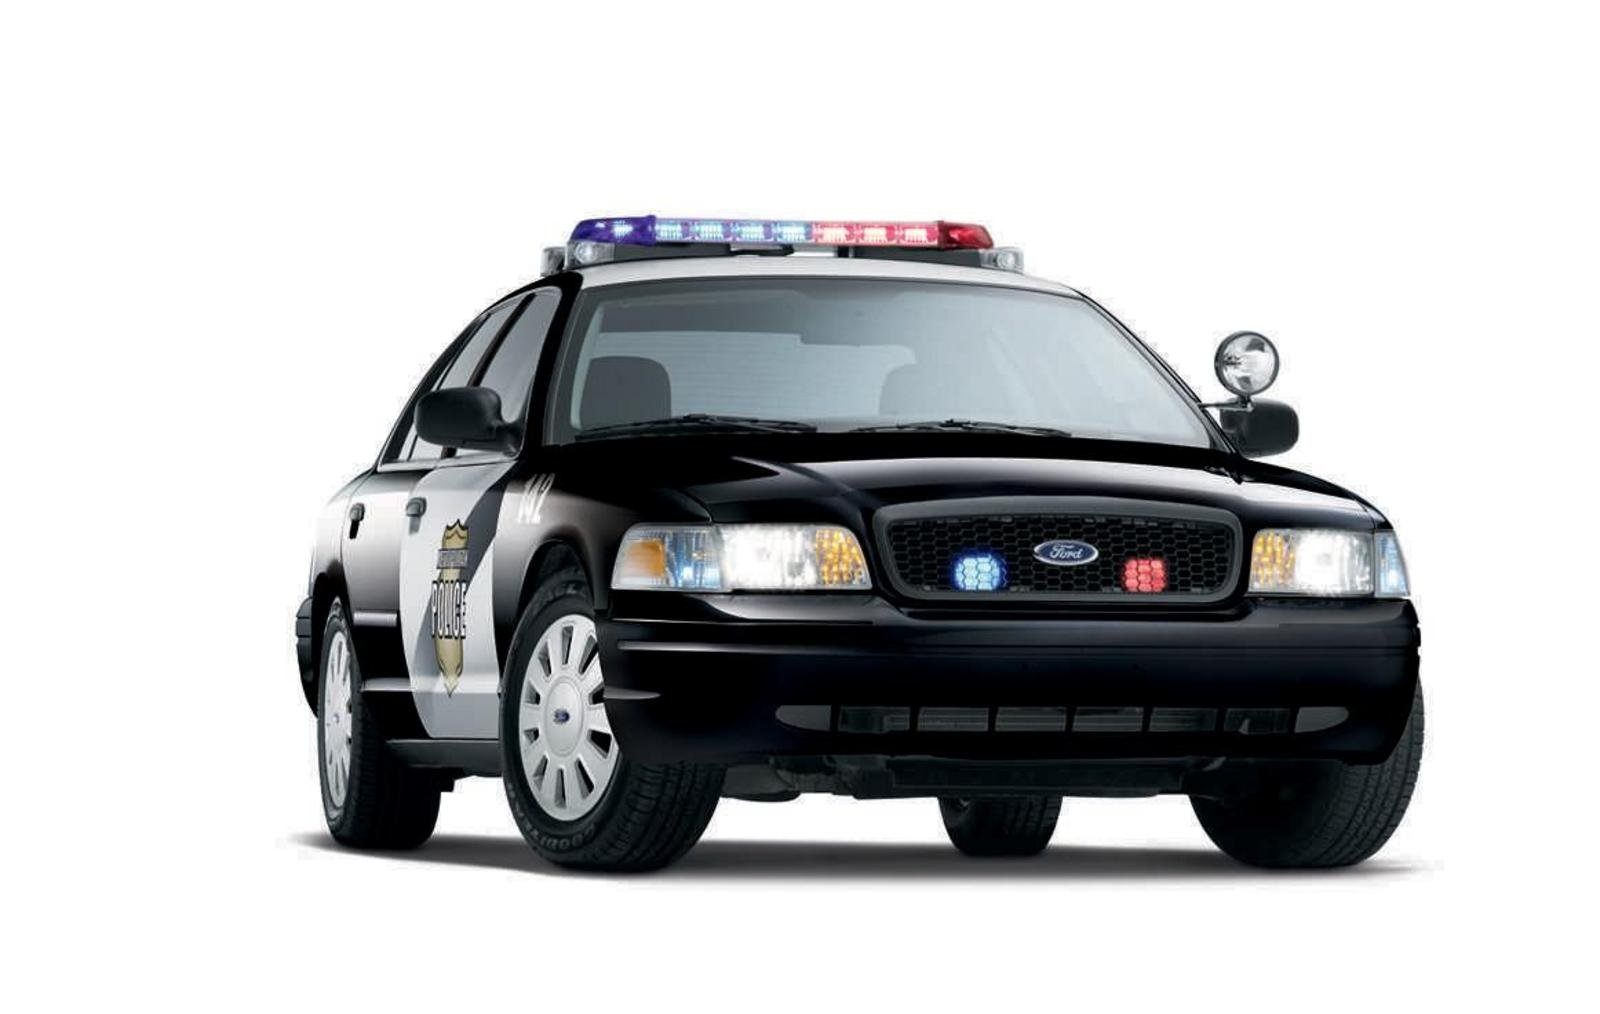 2008 ford crown victoria police interceptor review top speed. Black Bedroom Furniture Sets. Home Design Ideas